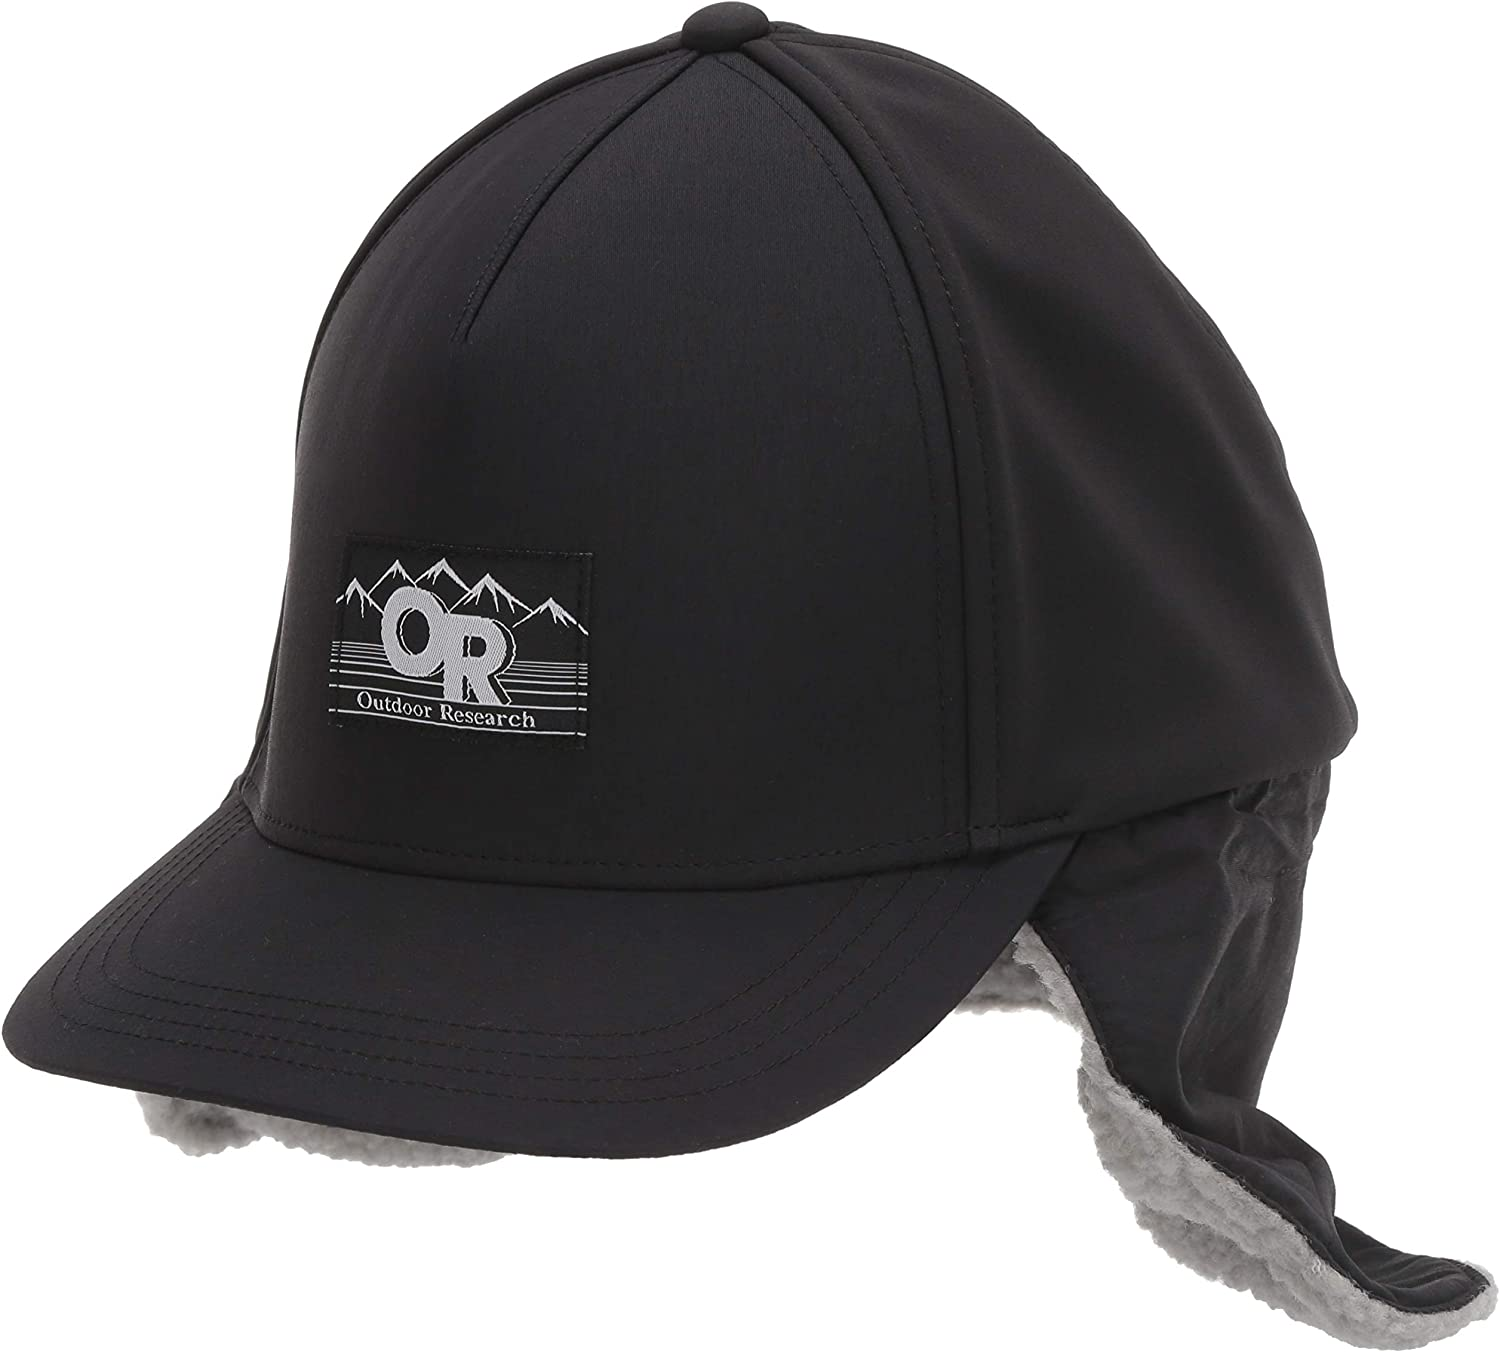 Outdoor Research Black New sales National products Ice Cap